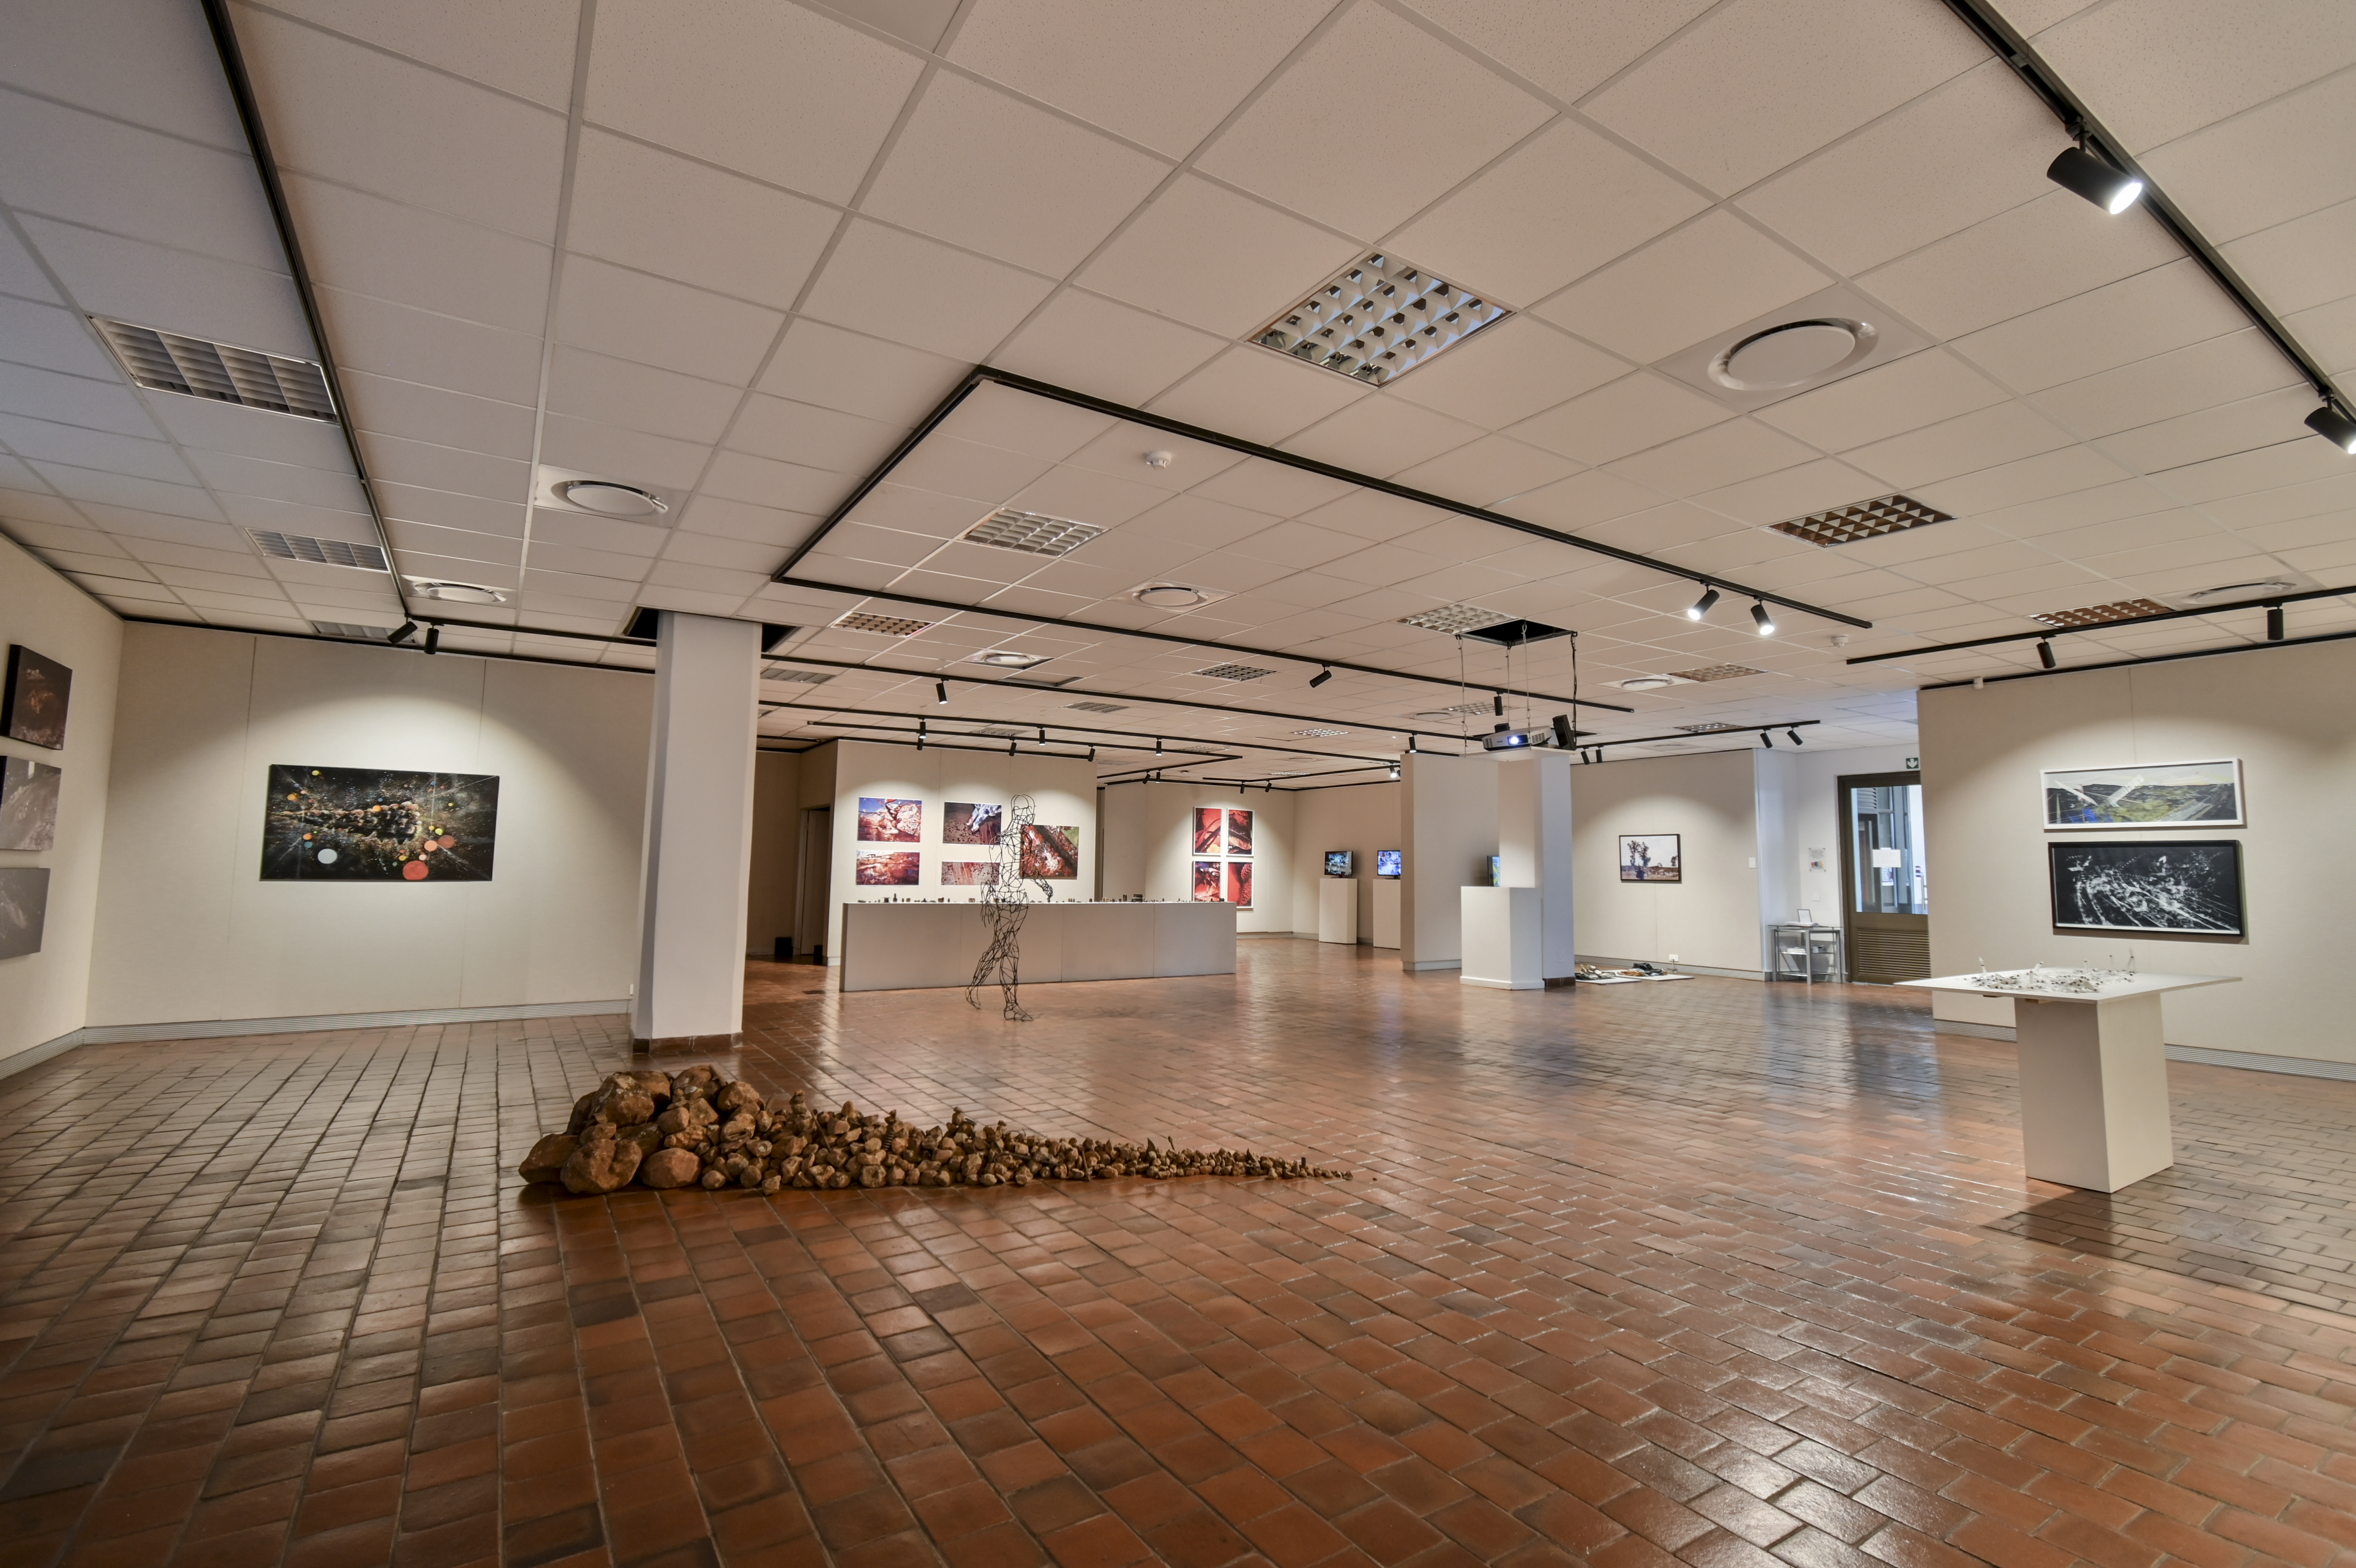 Final-year graduate exhibition at the Johannes Stegmann gallery